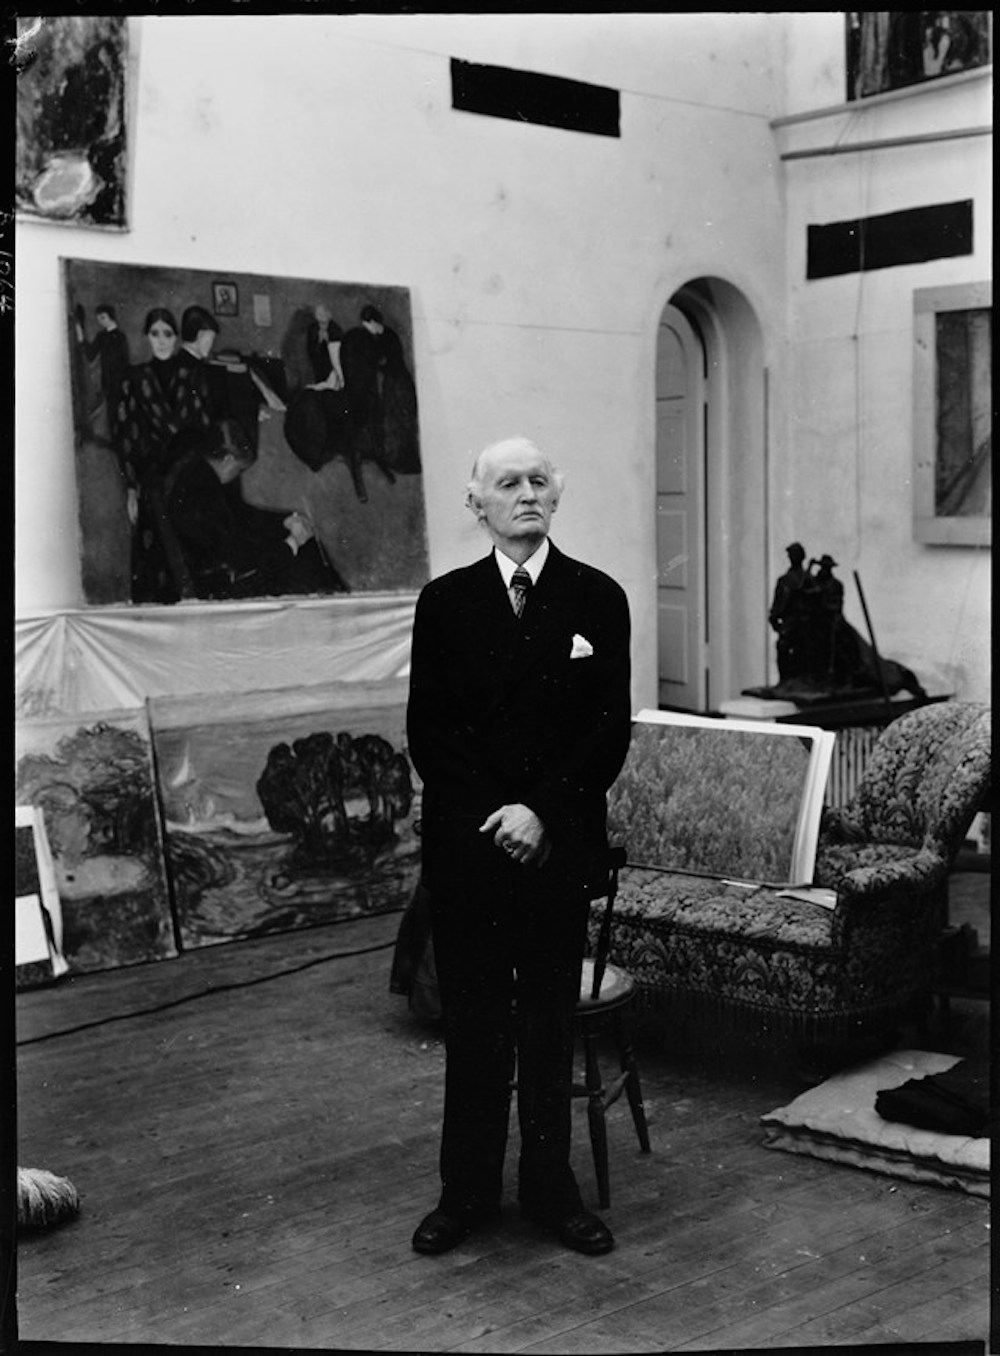 Munch in his Winter Studio in Ekely on his seventy-fifth birthday, 1938, photogrpahy by Ragnvald Vaering